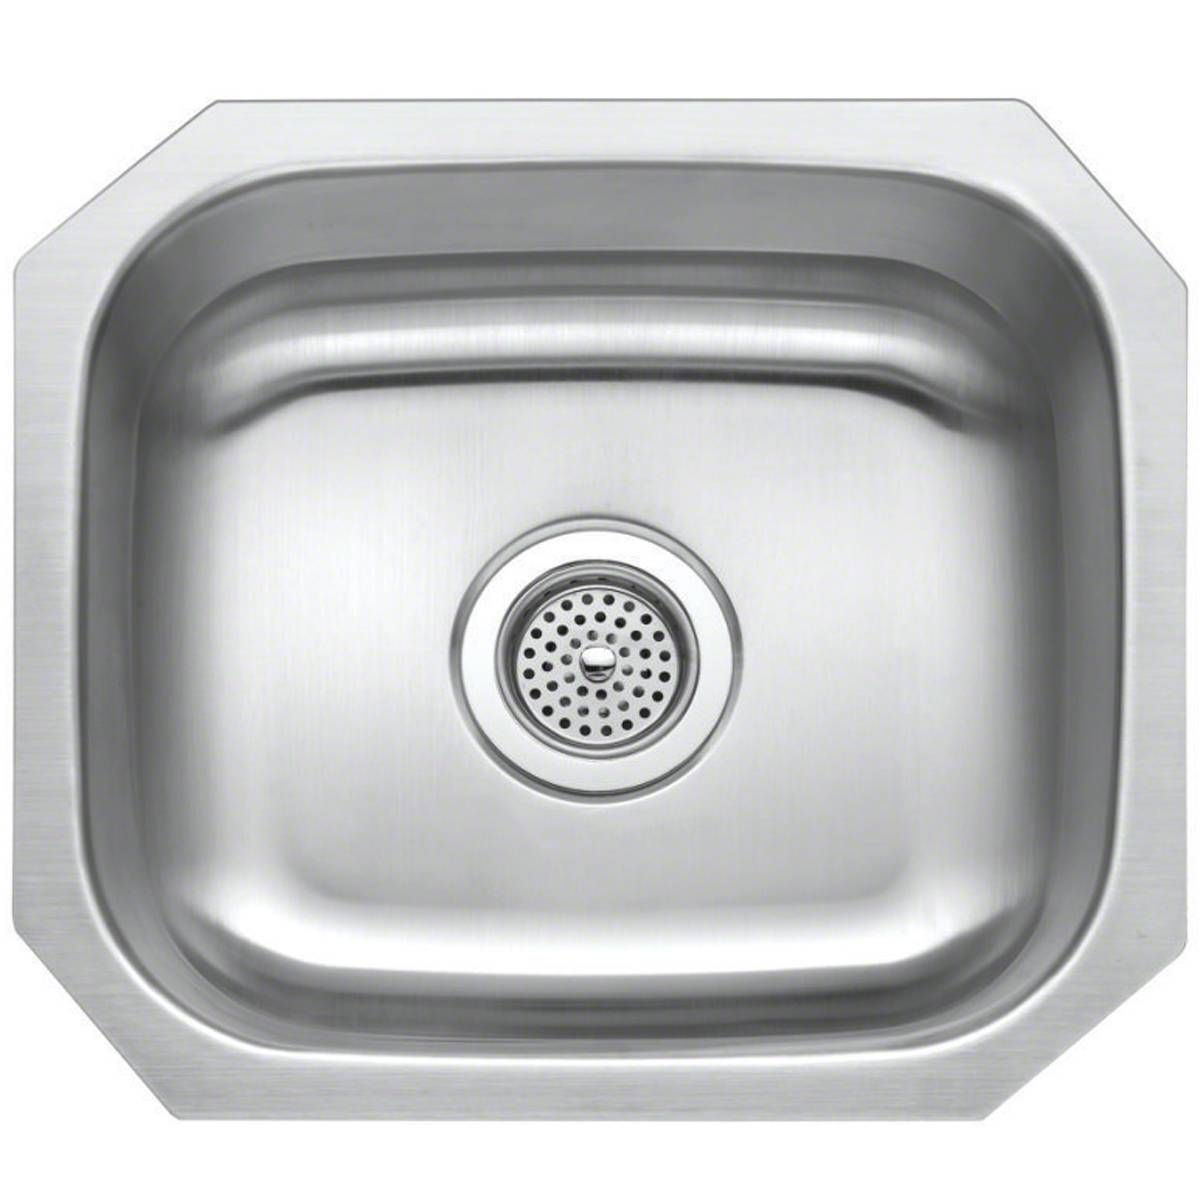 Pin On Stainless Steel Sinks